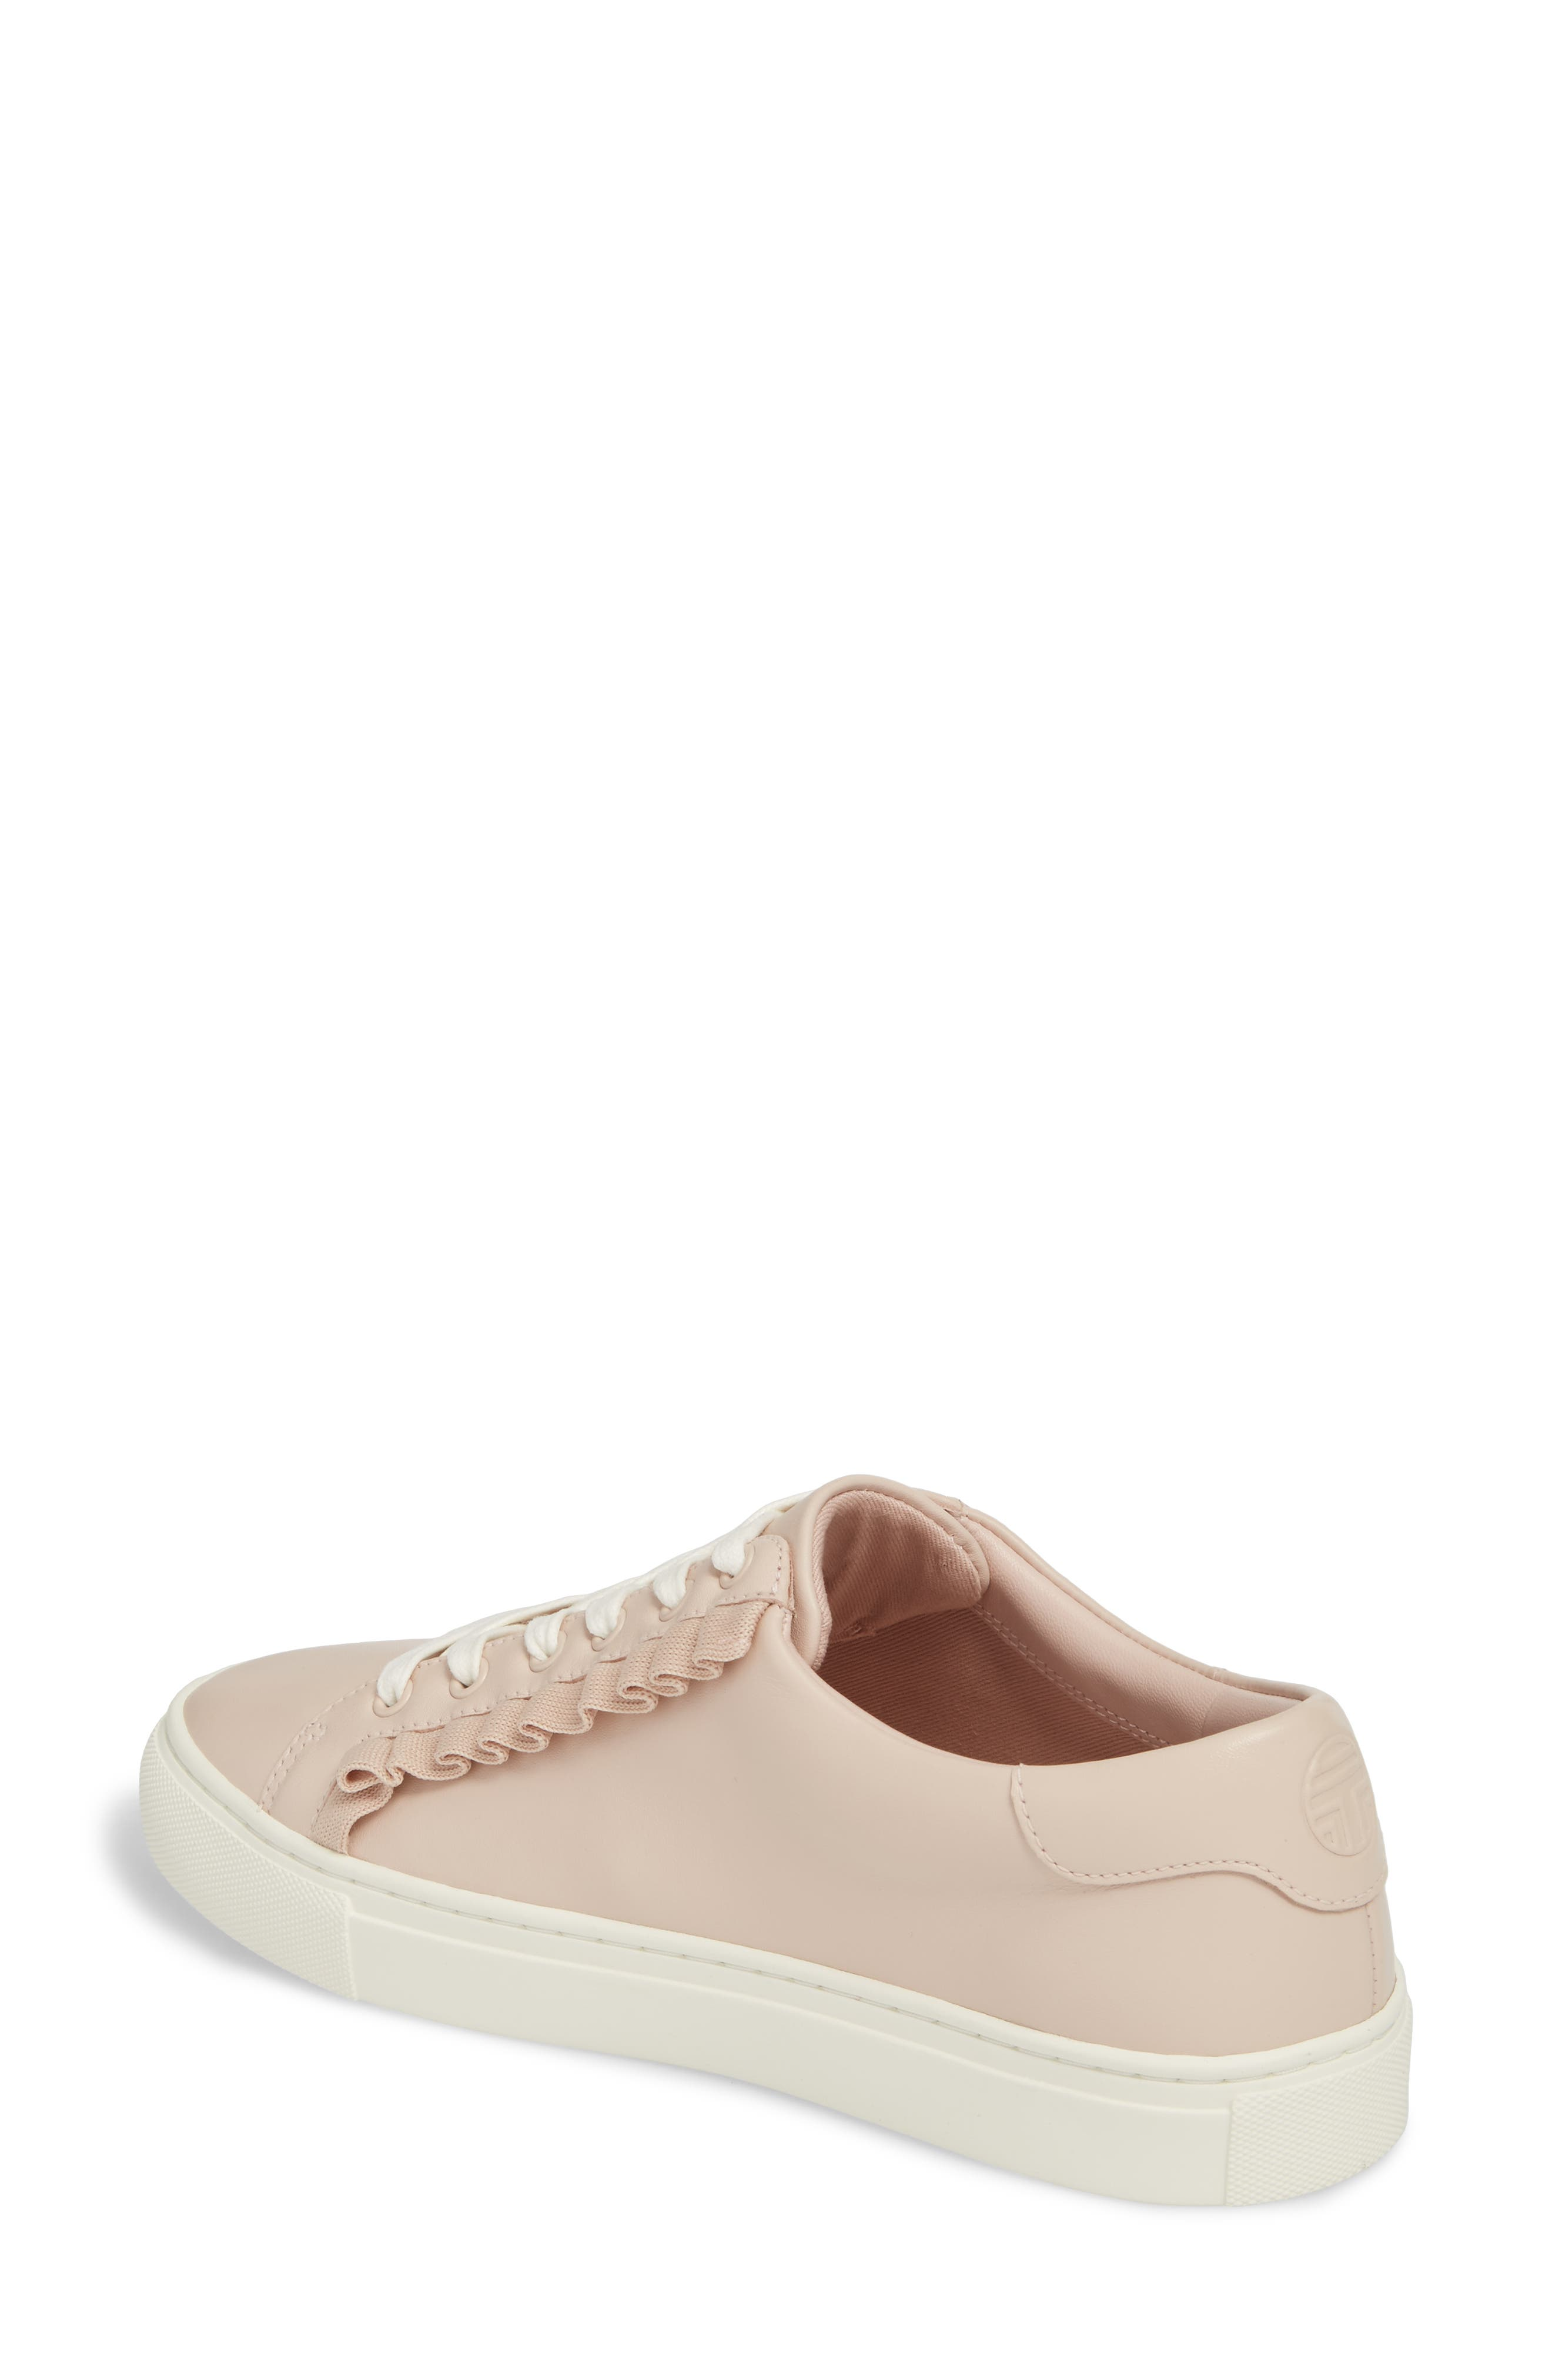 Ruffle Sneaker,                             Alternate thumbnail 2, color,                             SHELL PINK